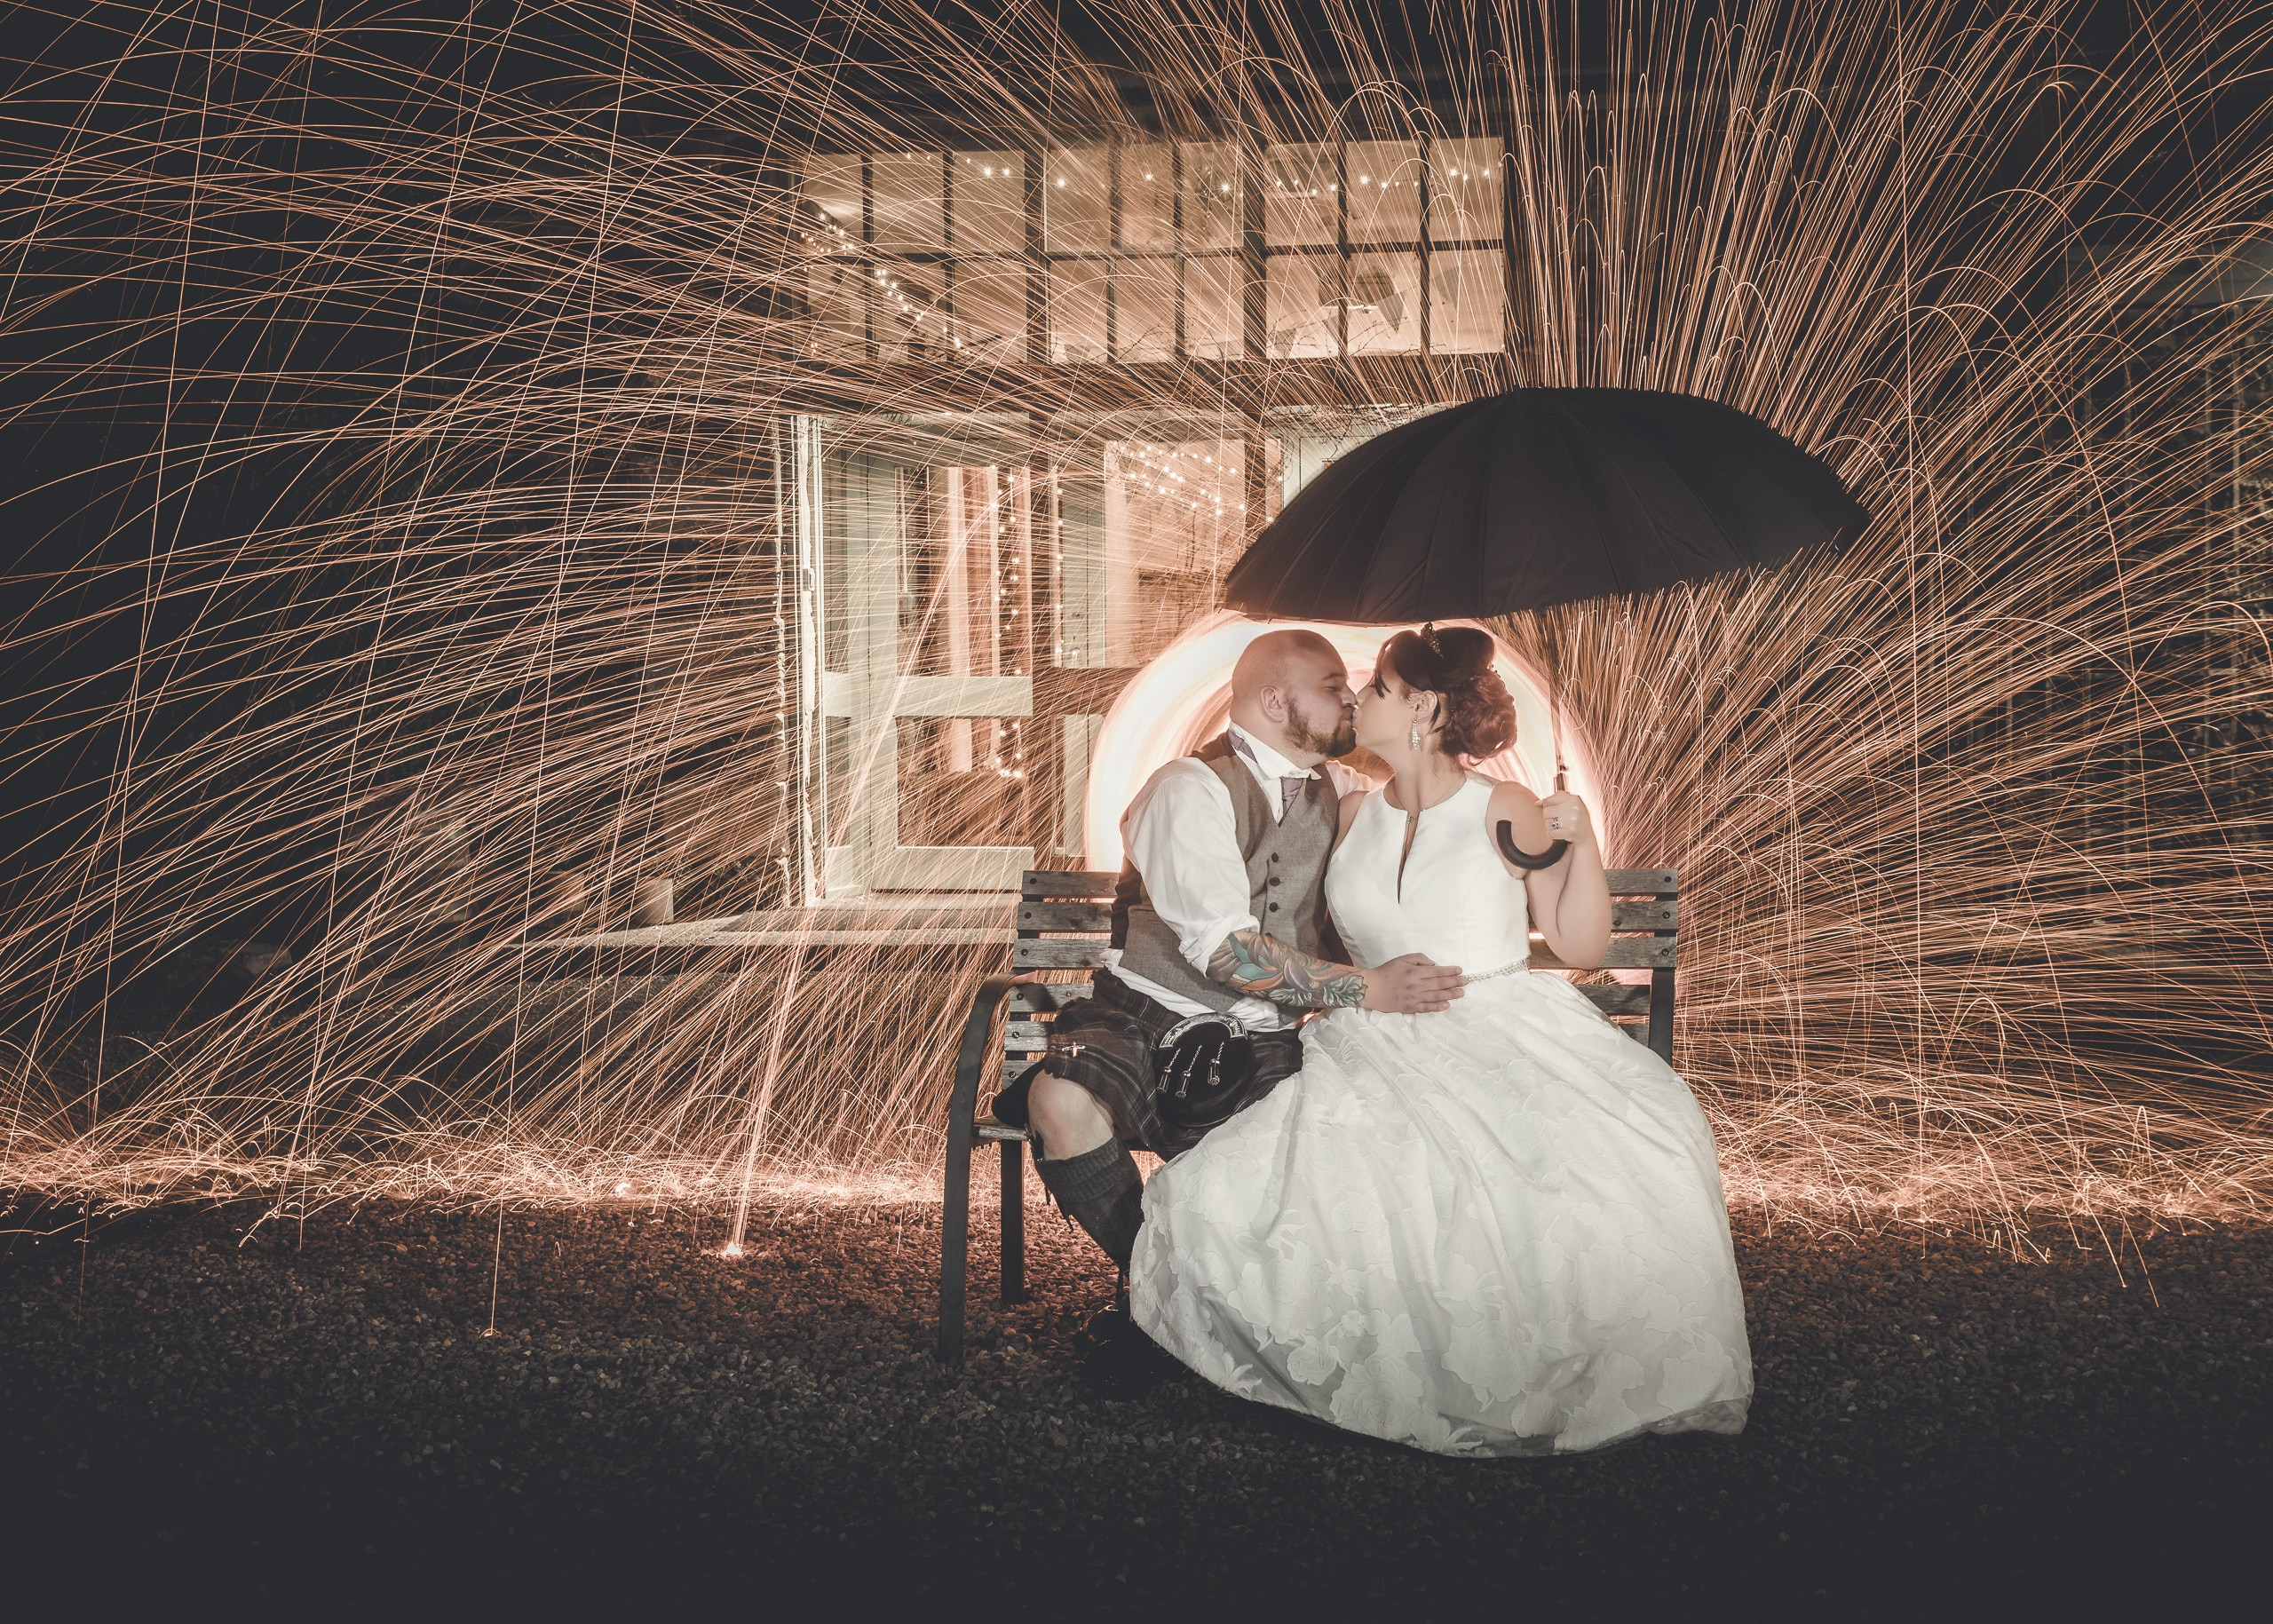 Artistic portrait of a bride and groom with steel wool fire